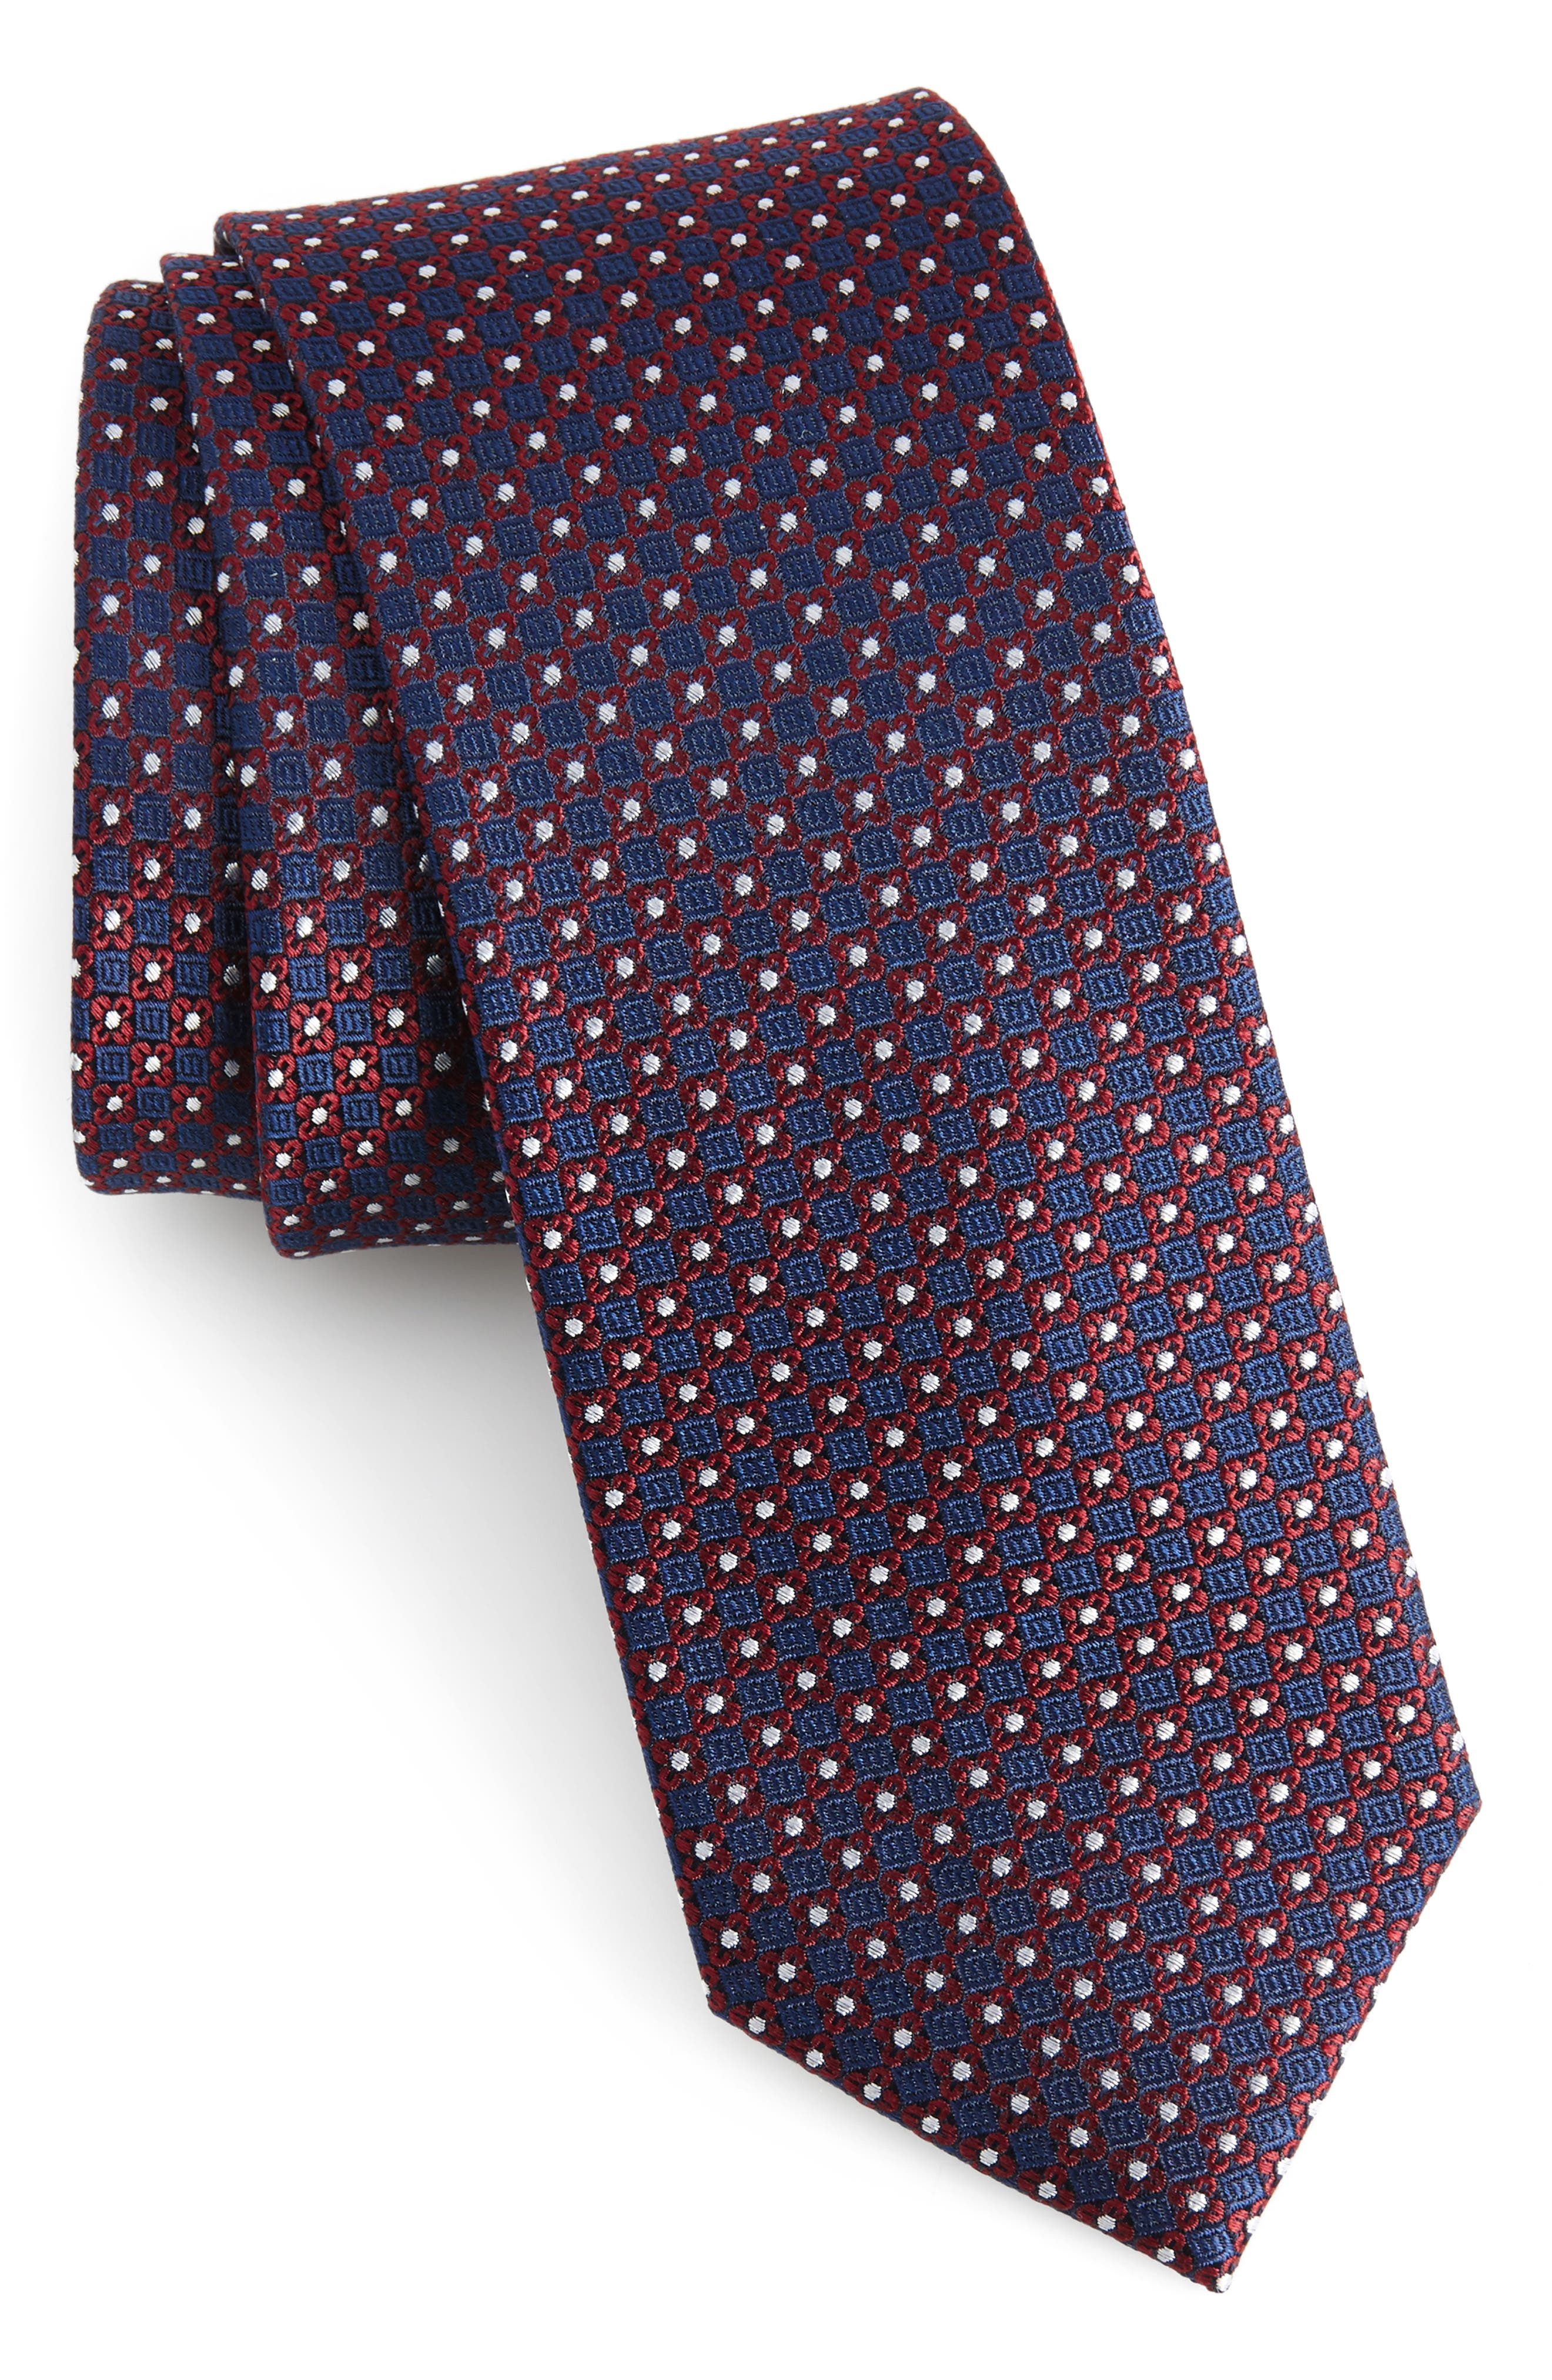 Floral Network Silk Skinny Tie,                             Main thumbnail 1, color,                             600